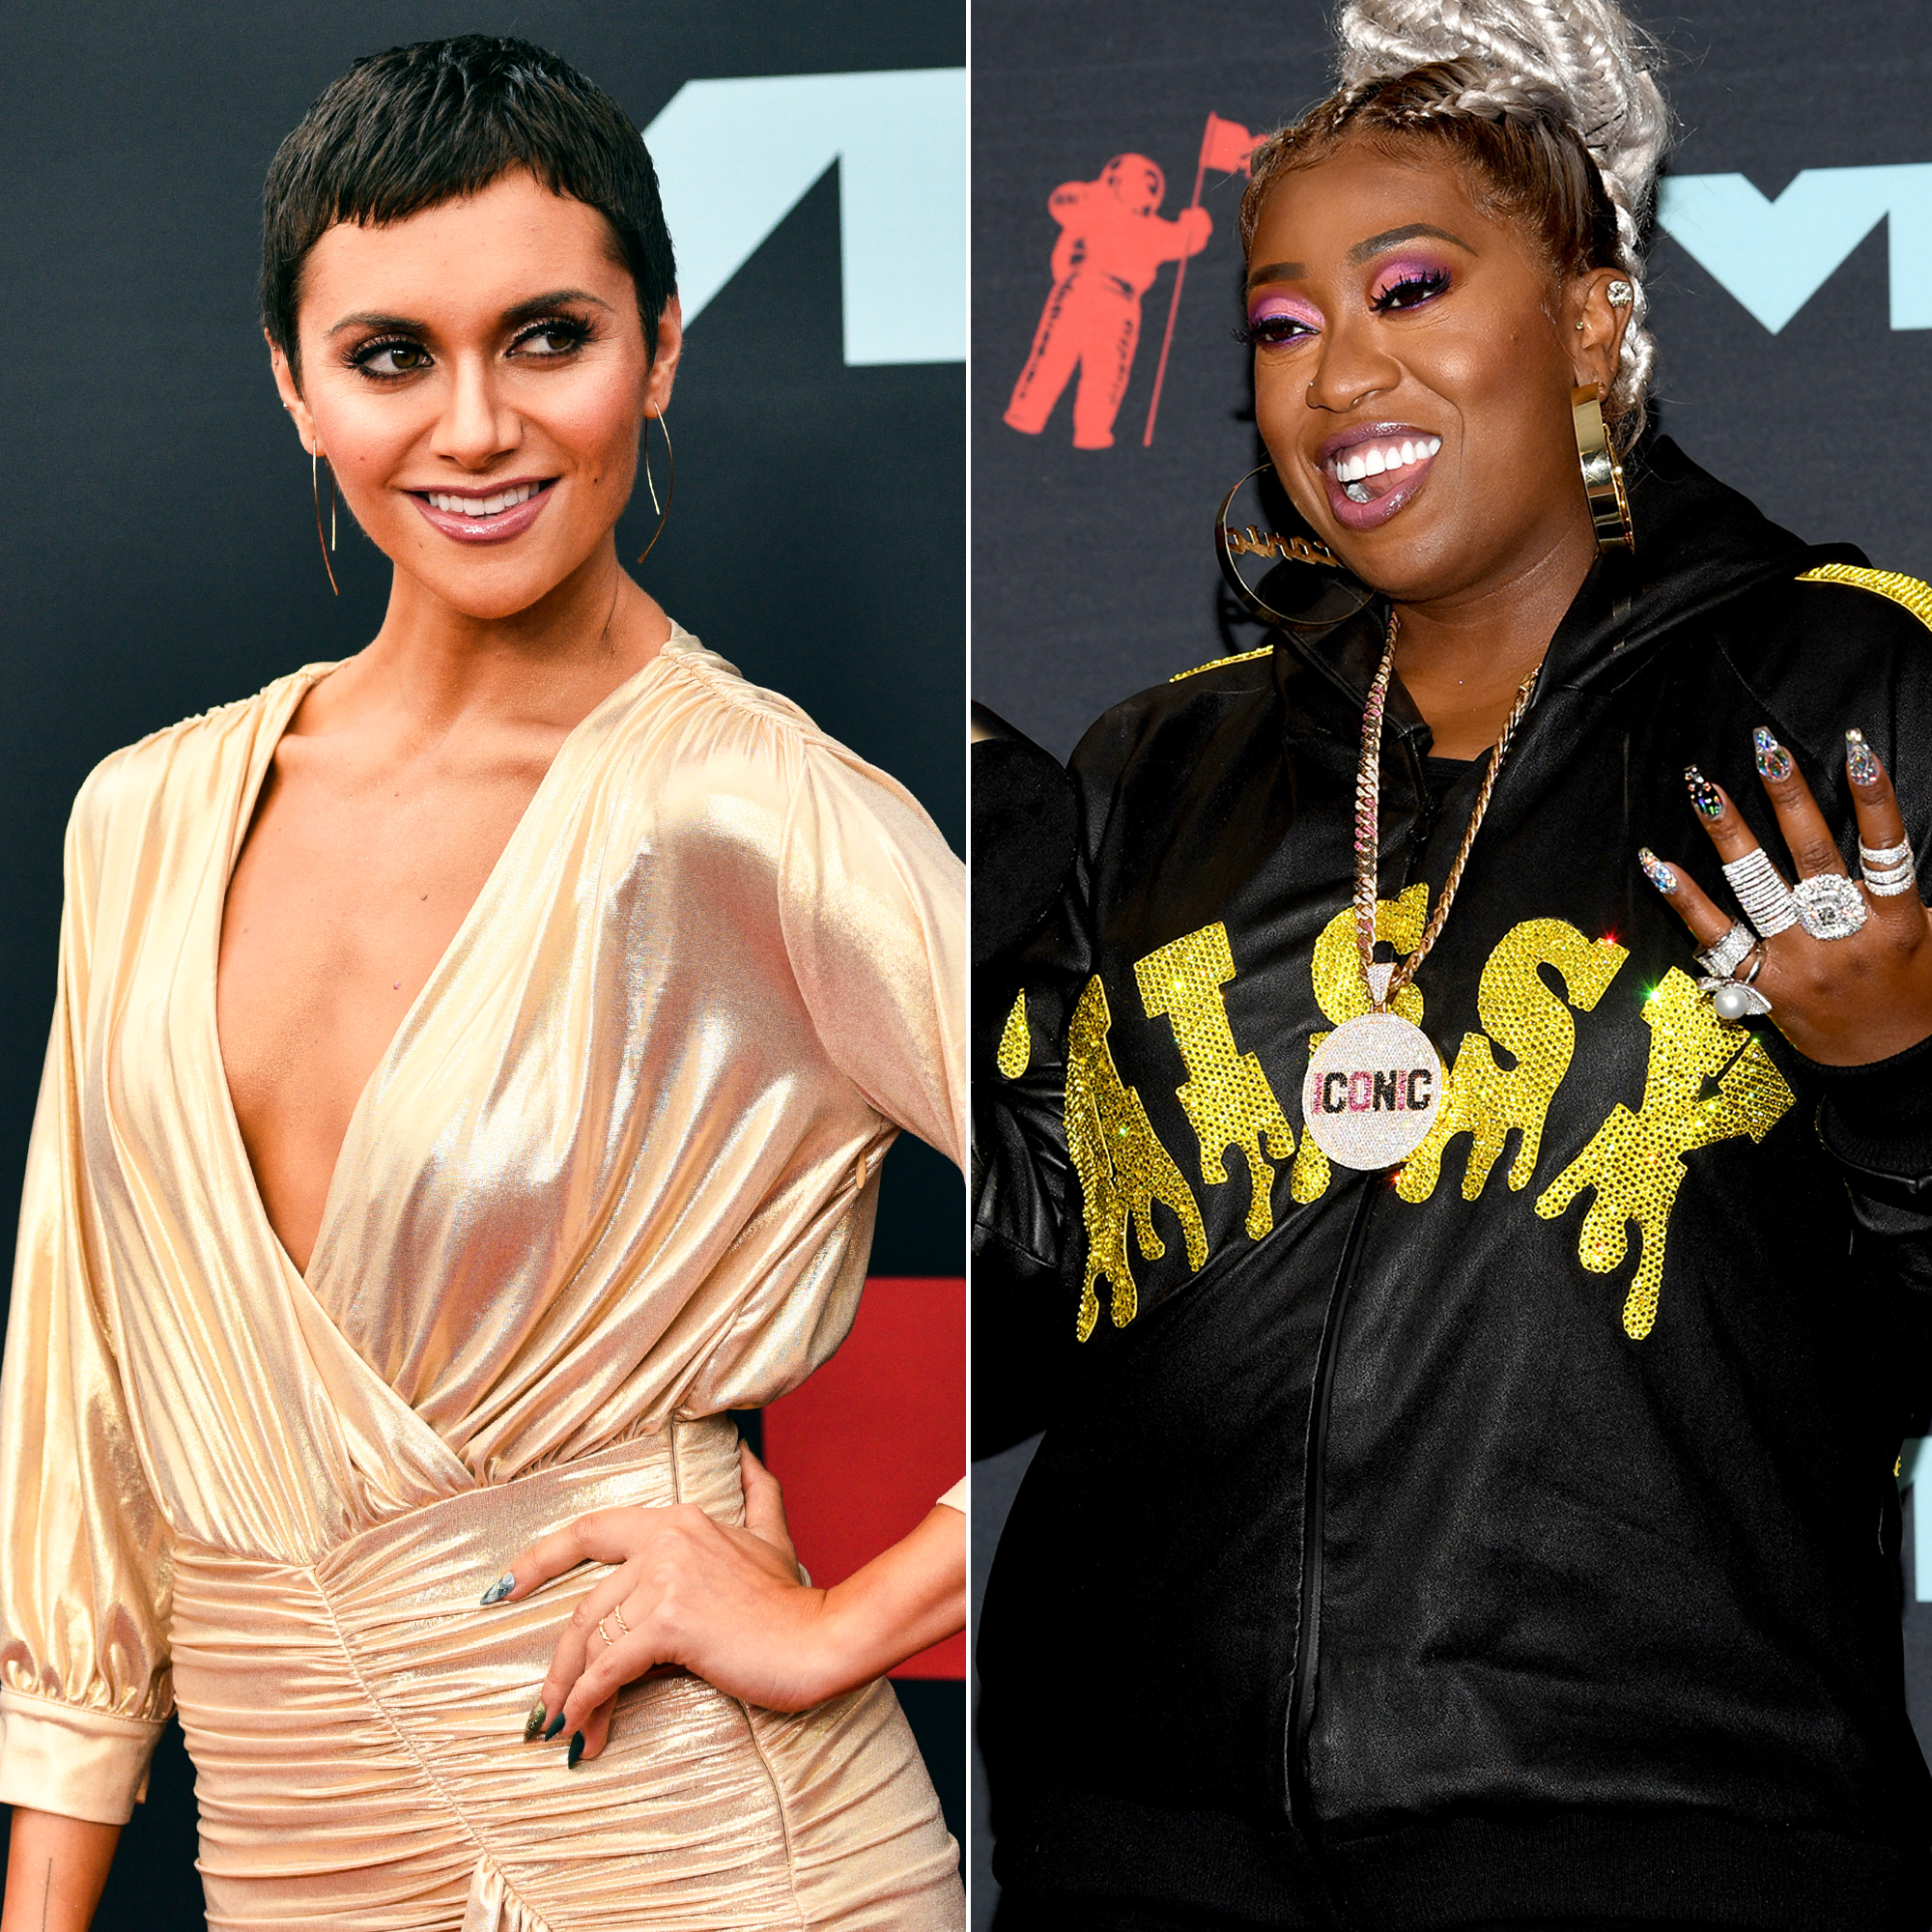 Vmas 2019 Alyson Stoner Reminisces About Working With Missy Elliott